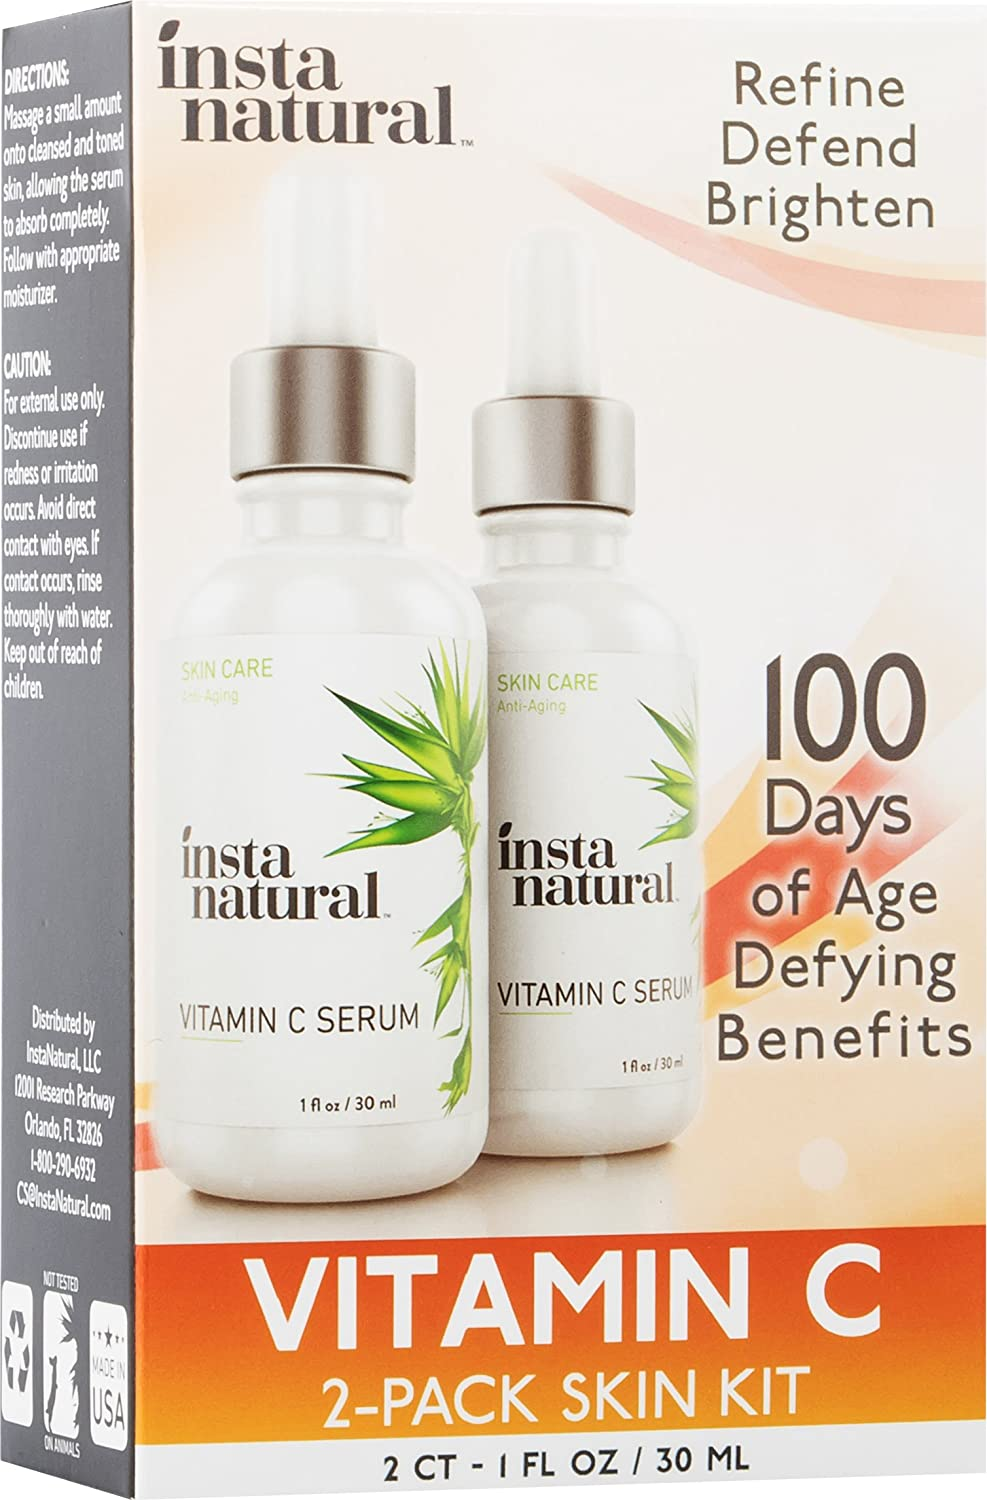 InstaNatural, Vitamin C Serum Skin Kit, 2 Pack, 1 fl. oz (pack of 2) 3 Pack - Andalou Naturals Age Defying Ultra Sheer Daily Defense Facial Lotion SPF 18 2.70 oz